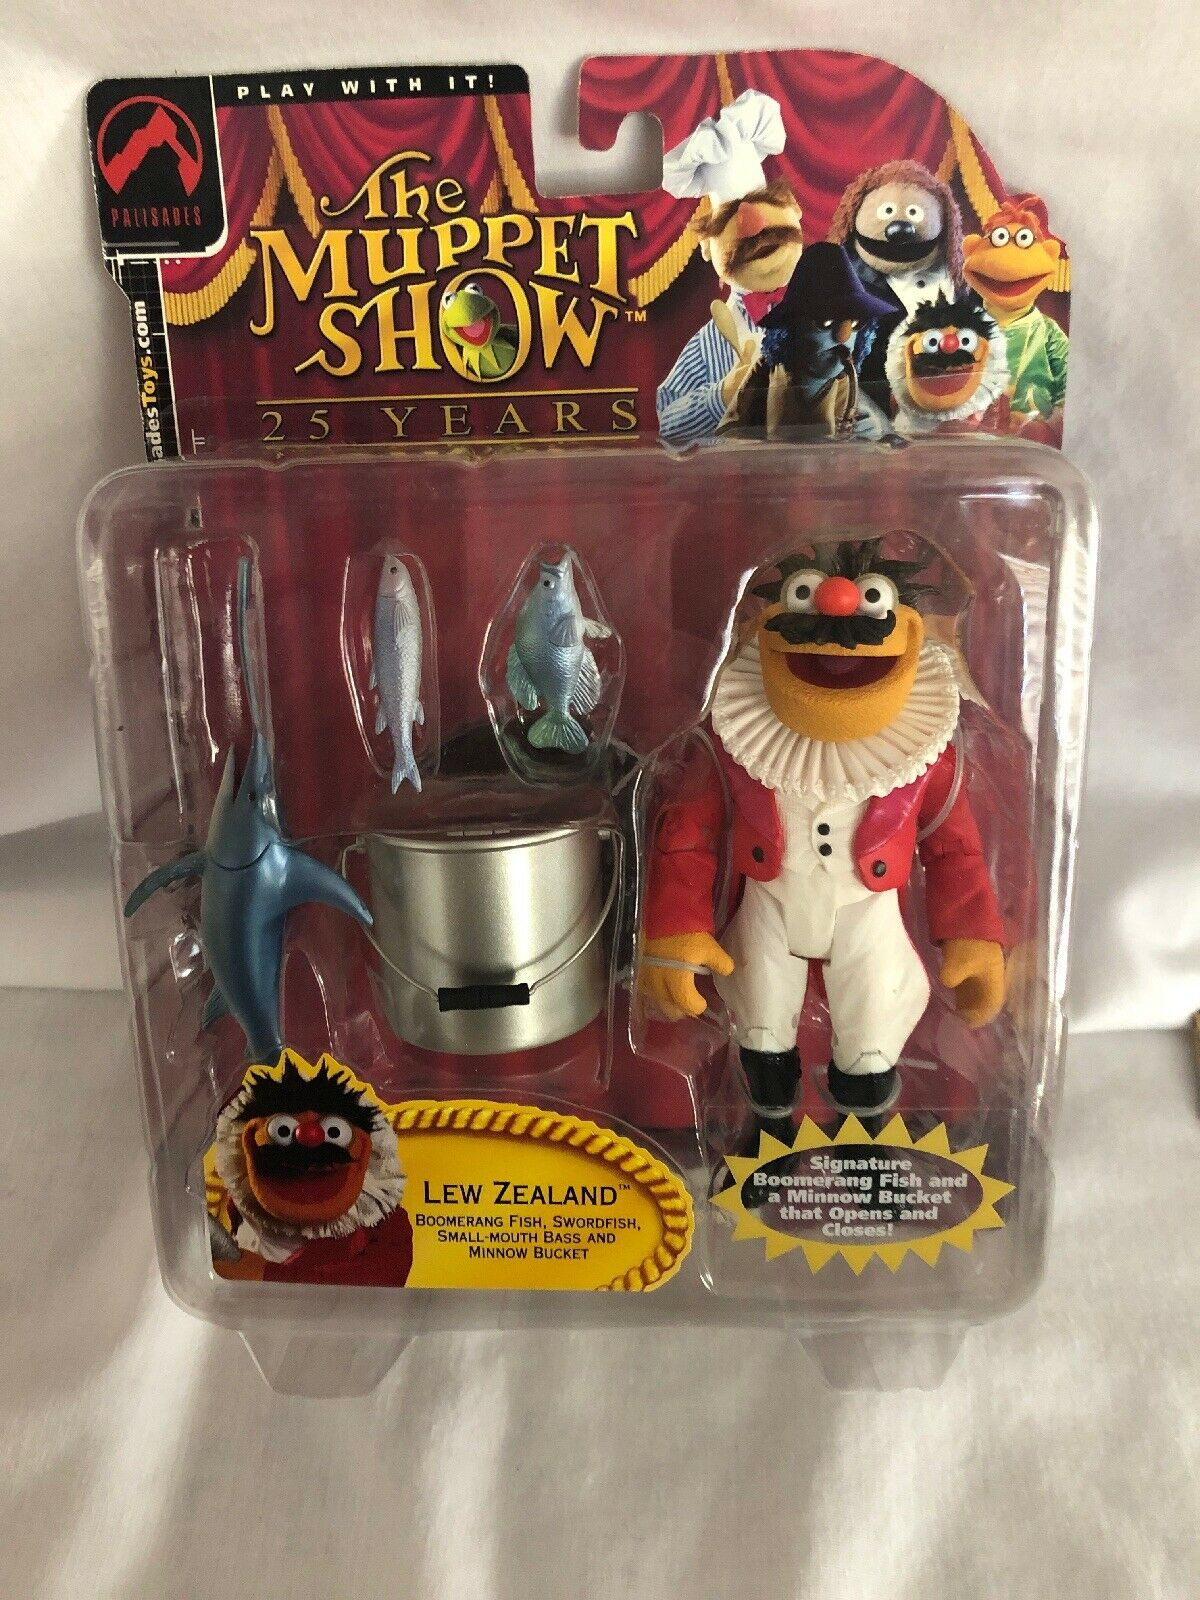 New Palisades Spielzeugs serie 3 The Muppet Show Lew Zealand Figurine